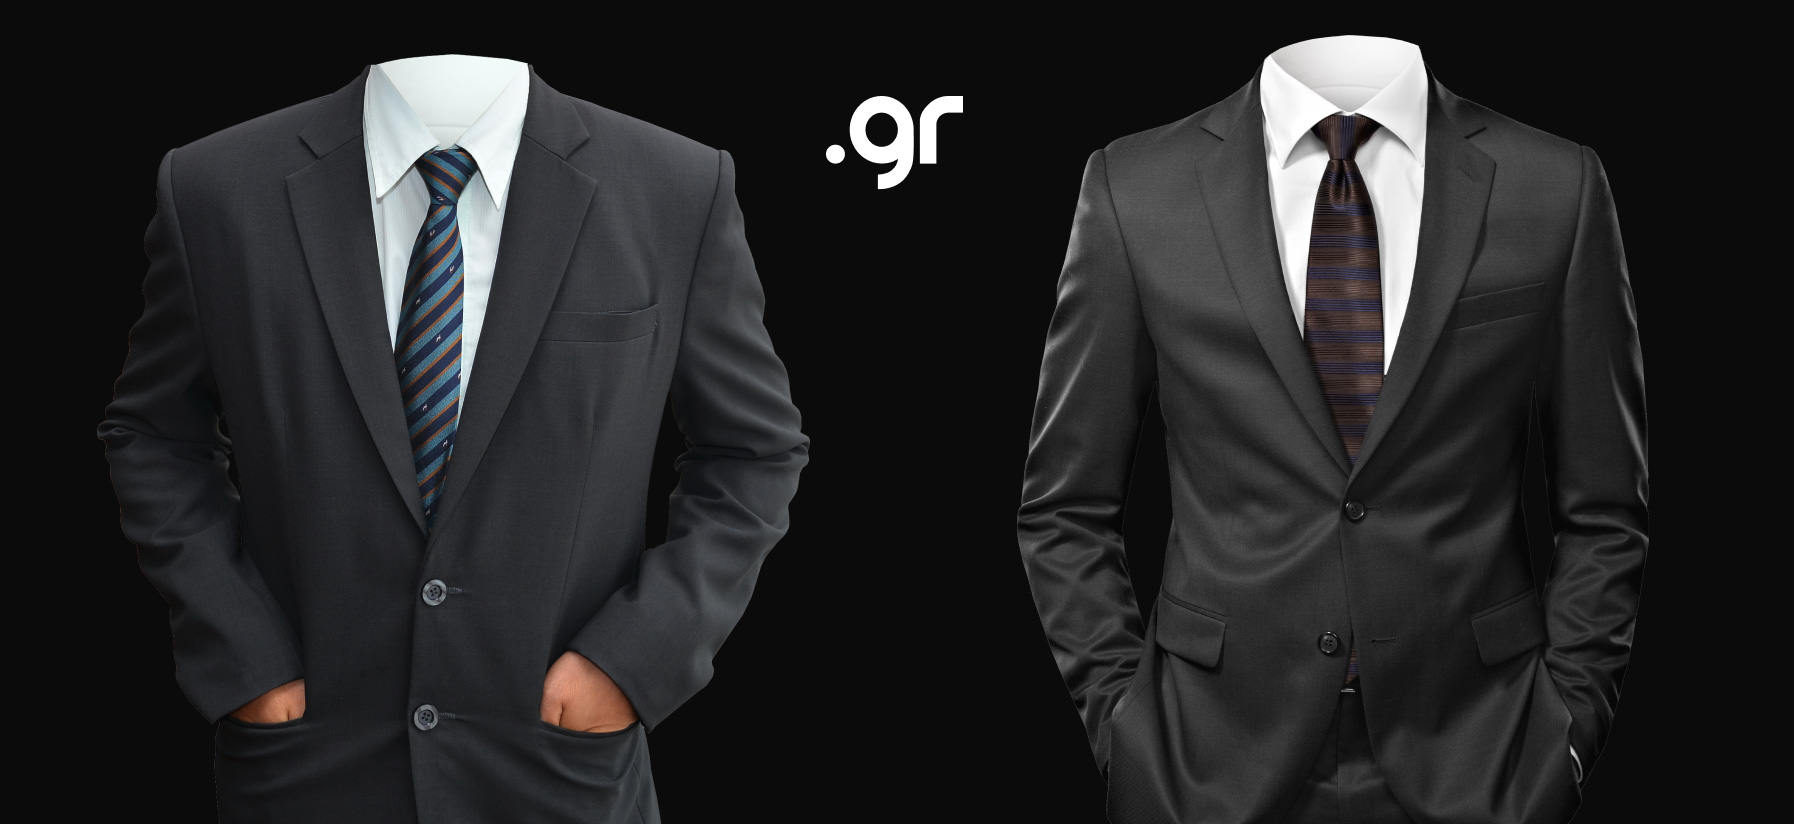 Suit and development. Why are they more similar than you think?